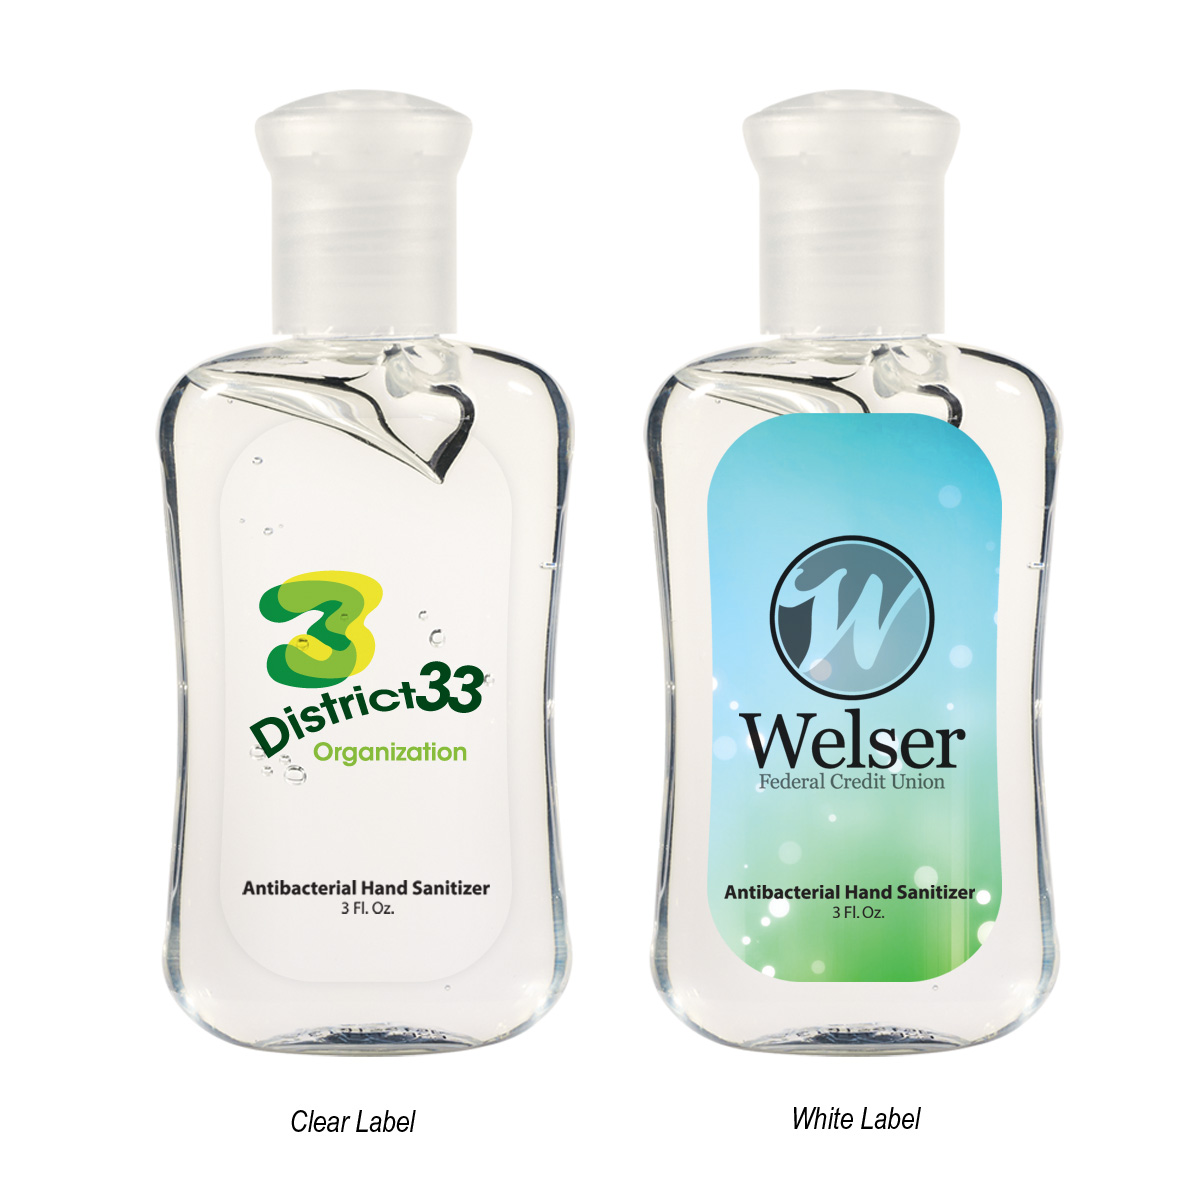 964289539-816 - 3 Oz. Hand Sanitizer Fashion Bottle - thumbnail